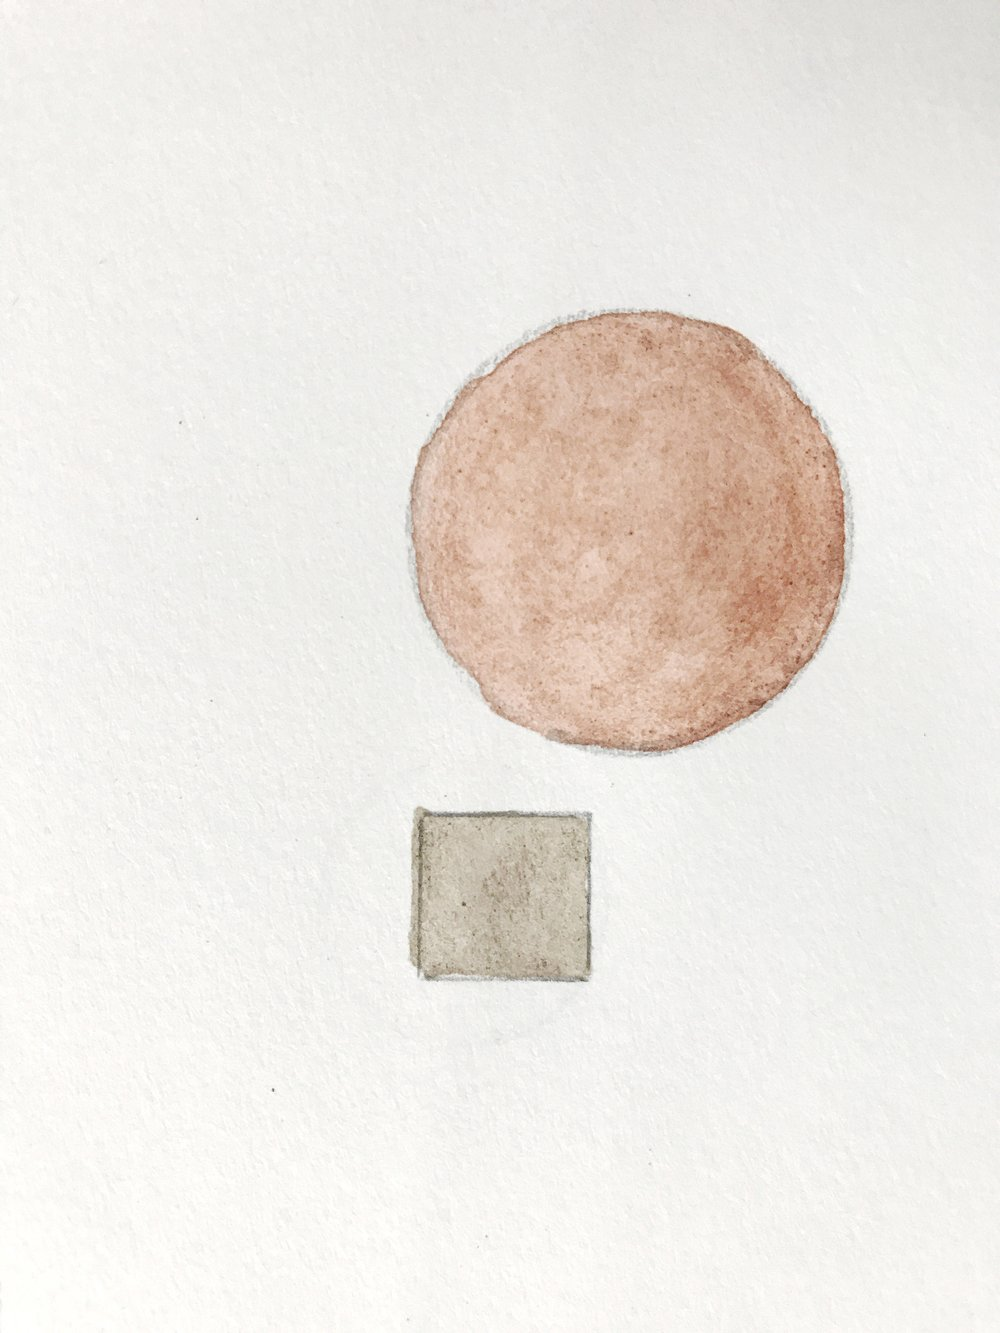 Lauren Sauder - Original Painting from Earth Pigments, 100 Day Project